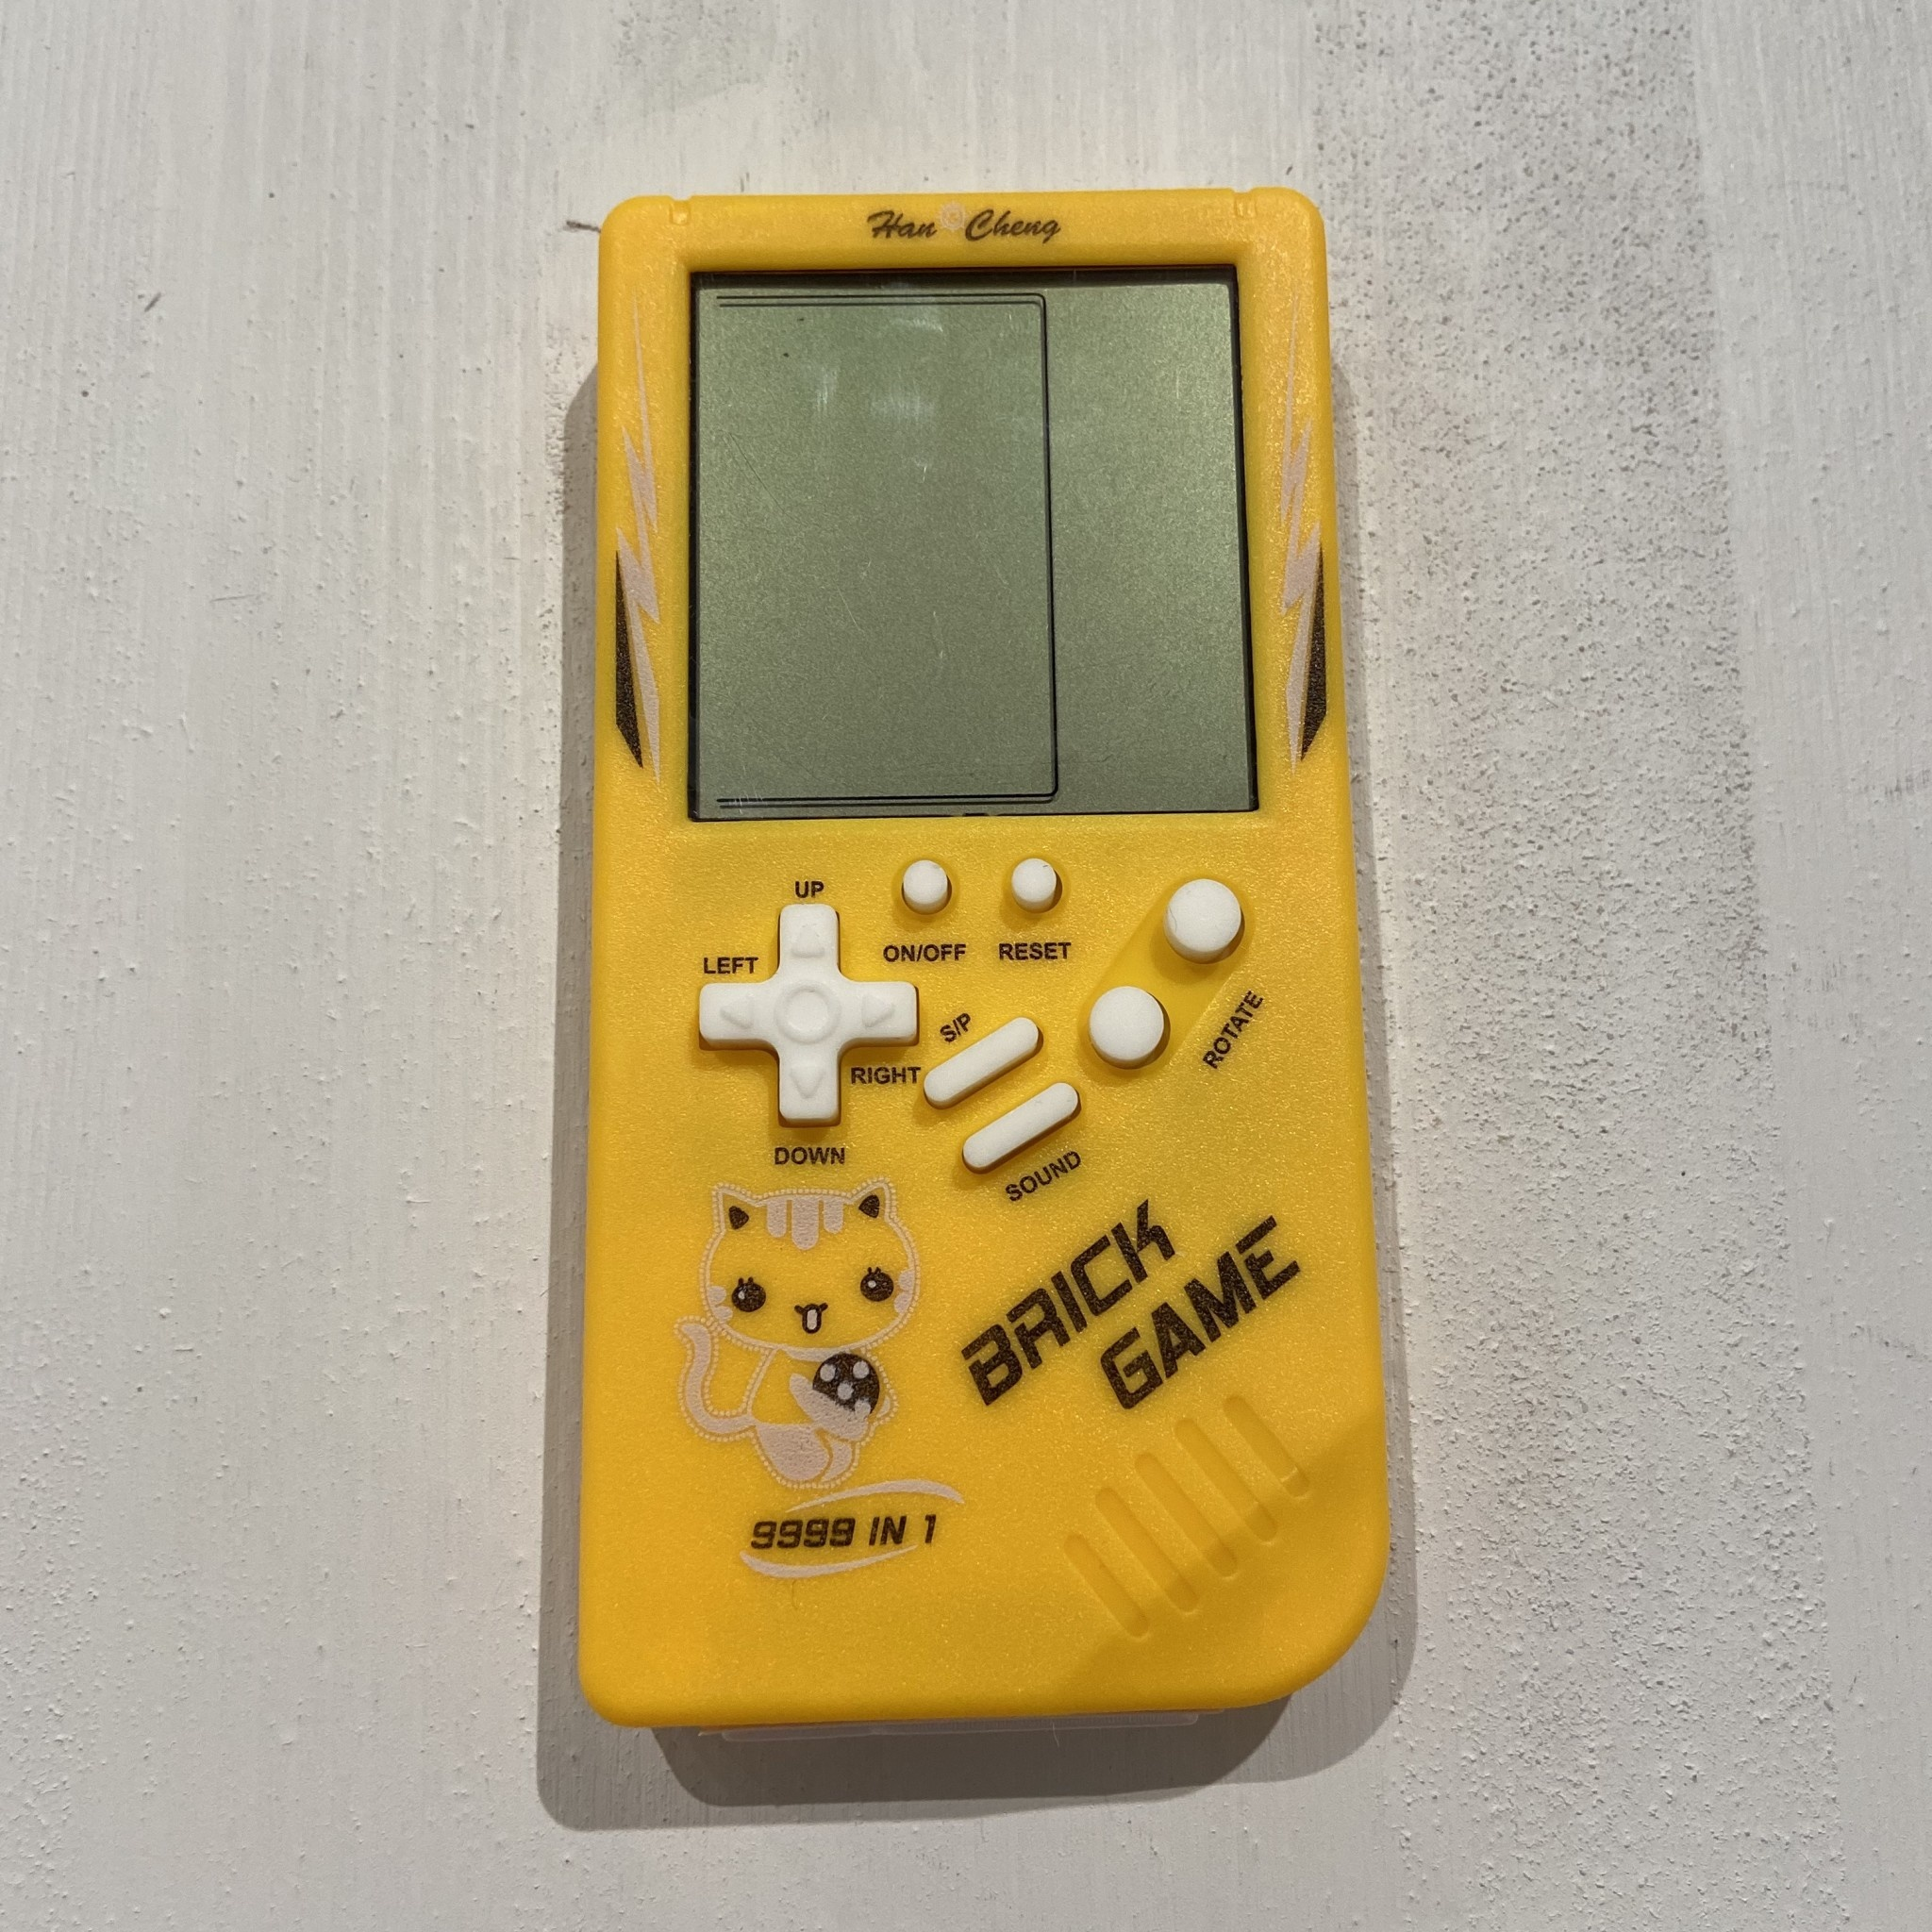 Brick Game Boy 9999 in 1